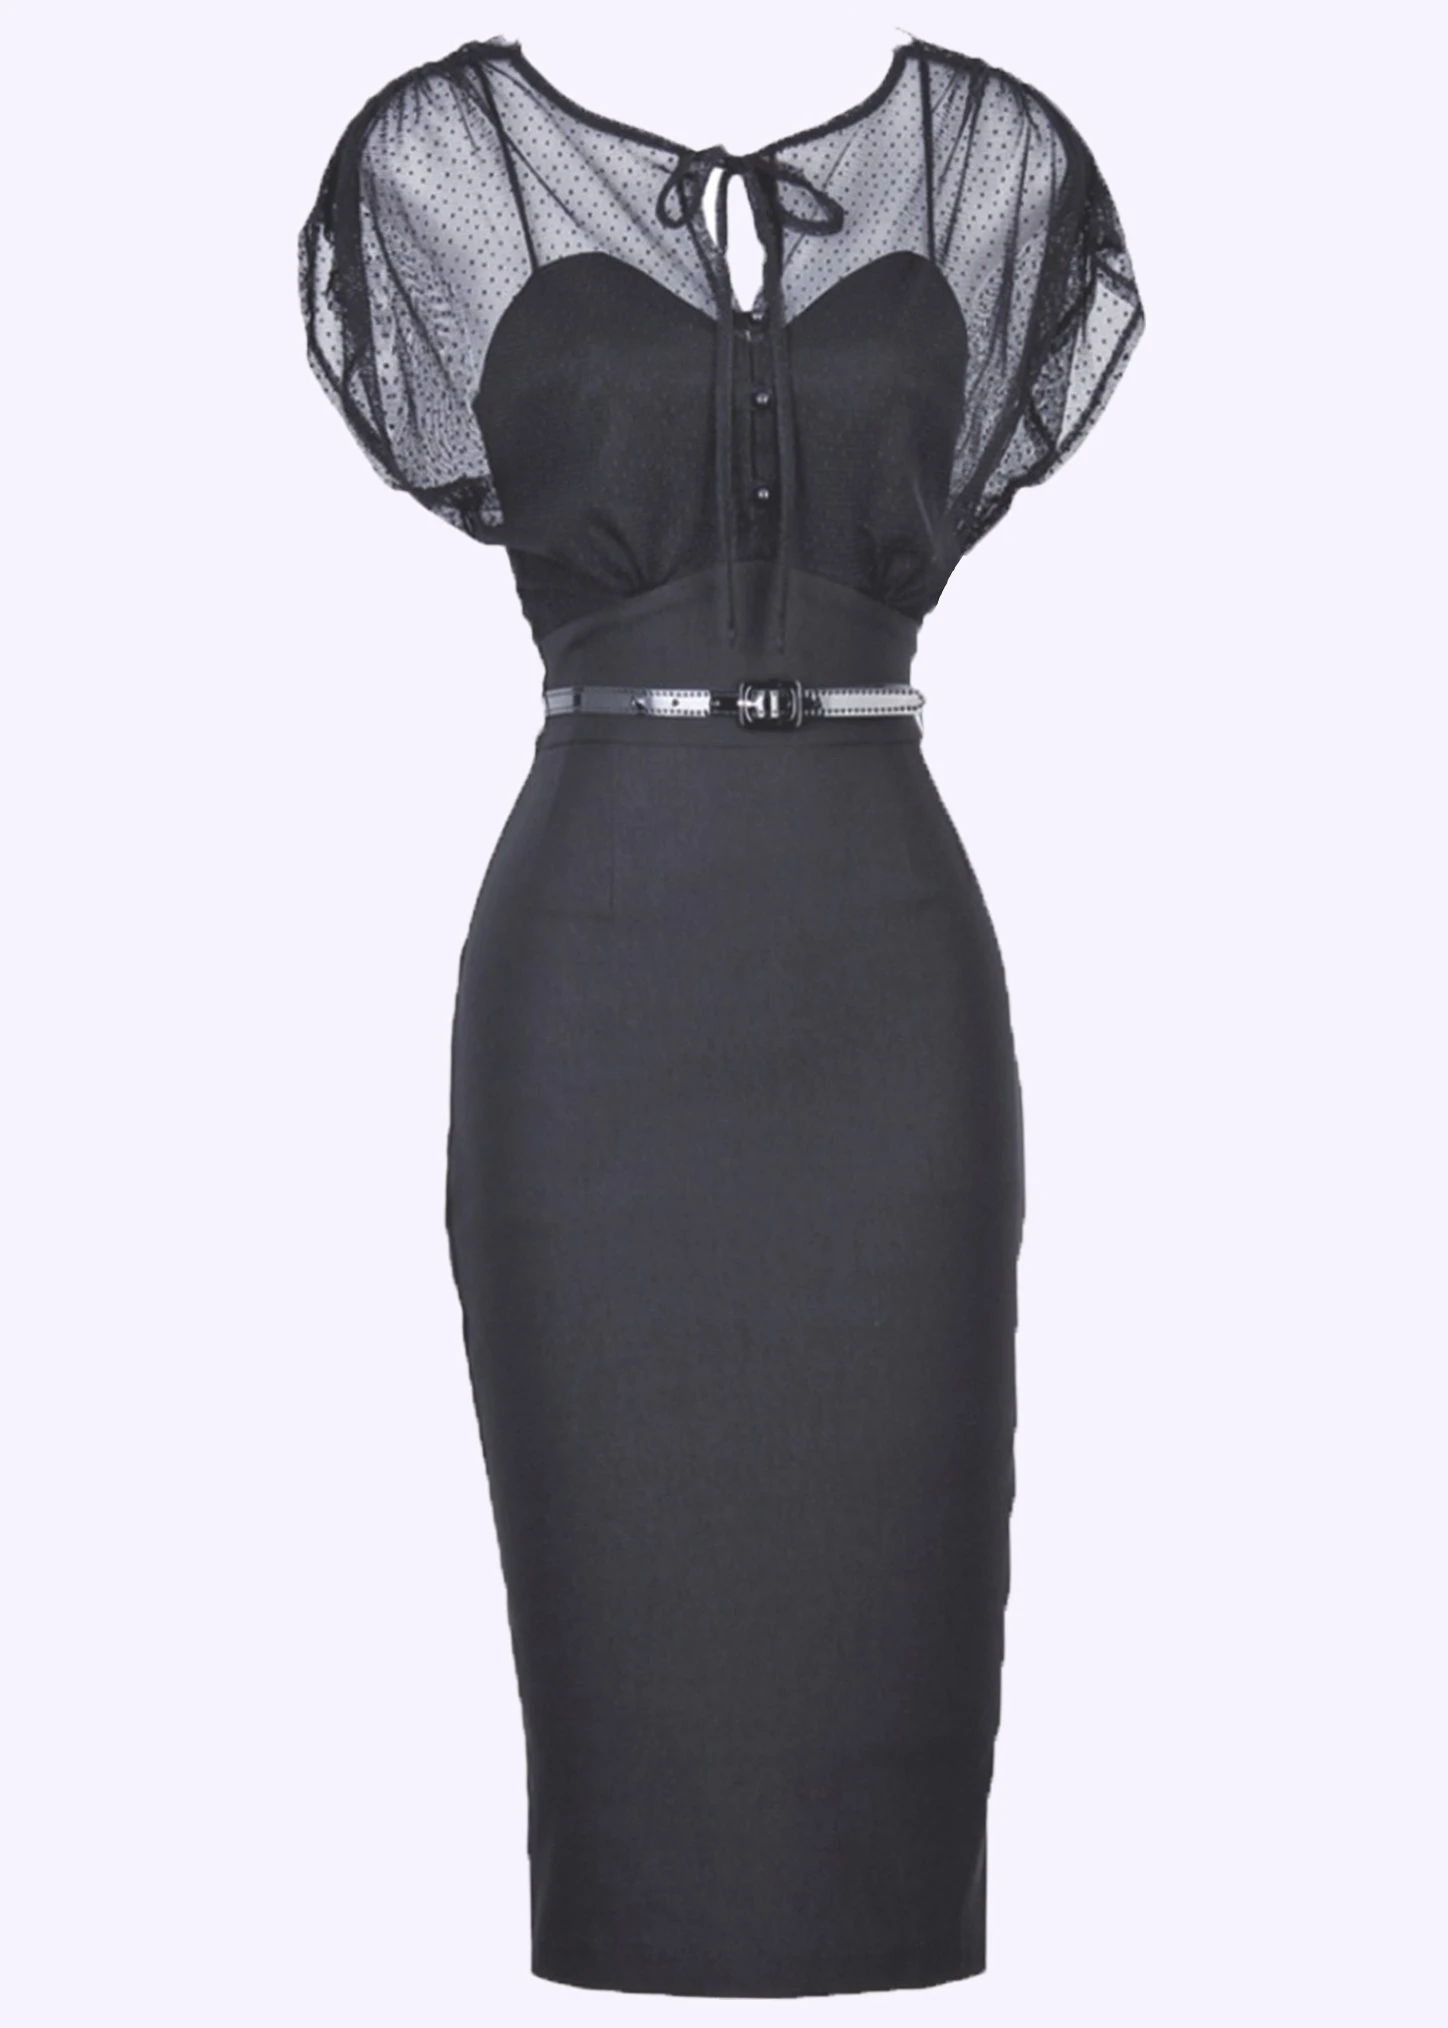 The small black with transparent top detail